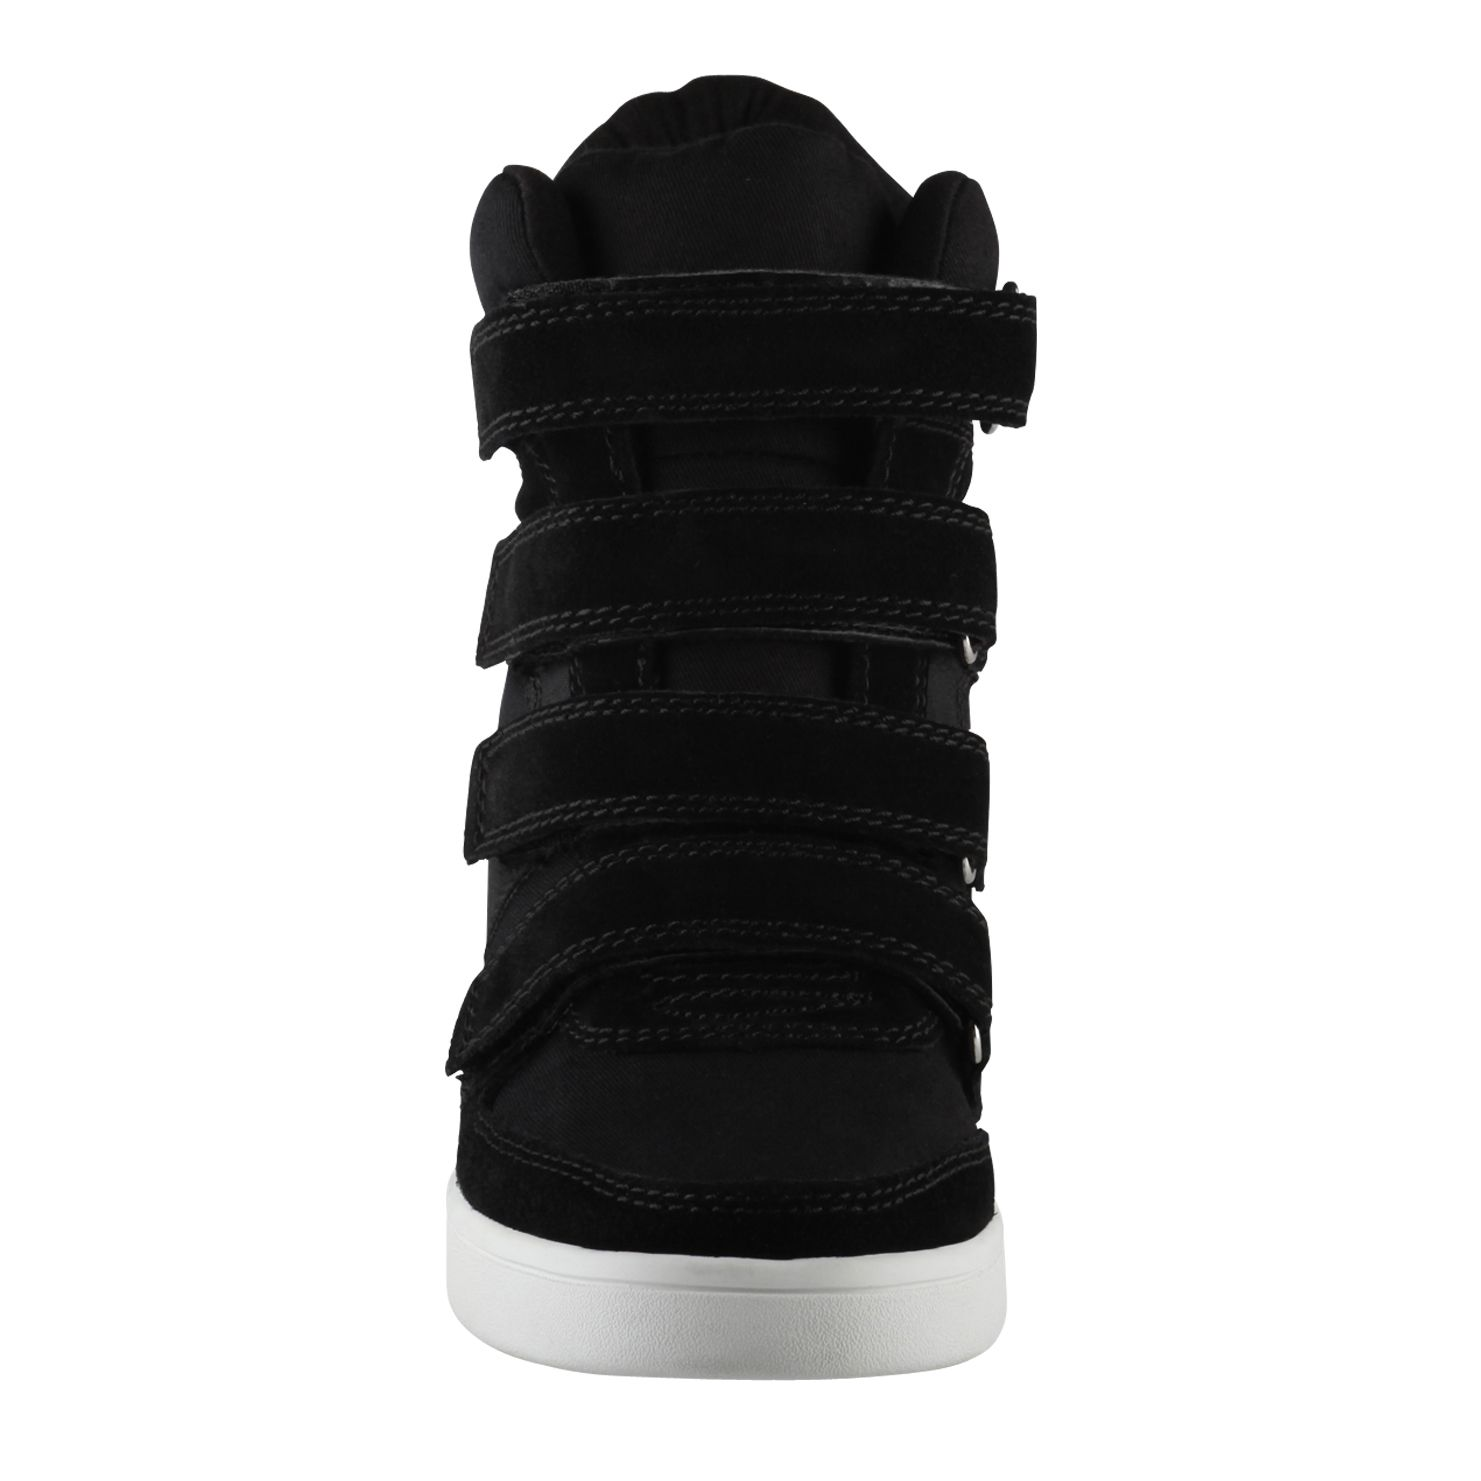 Chism hi top wedge trainer shoes